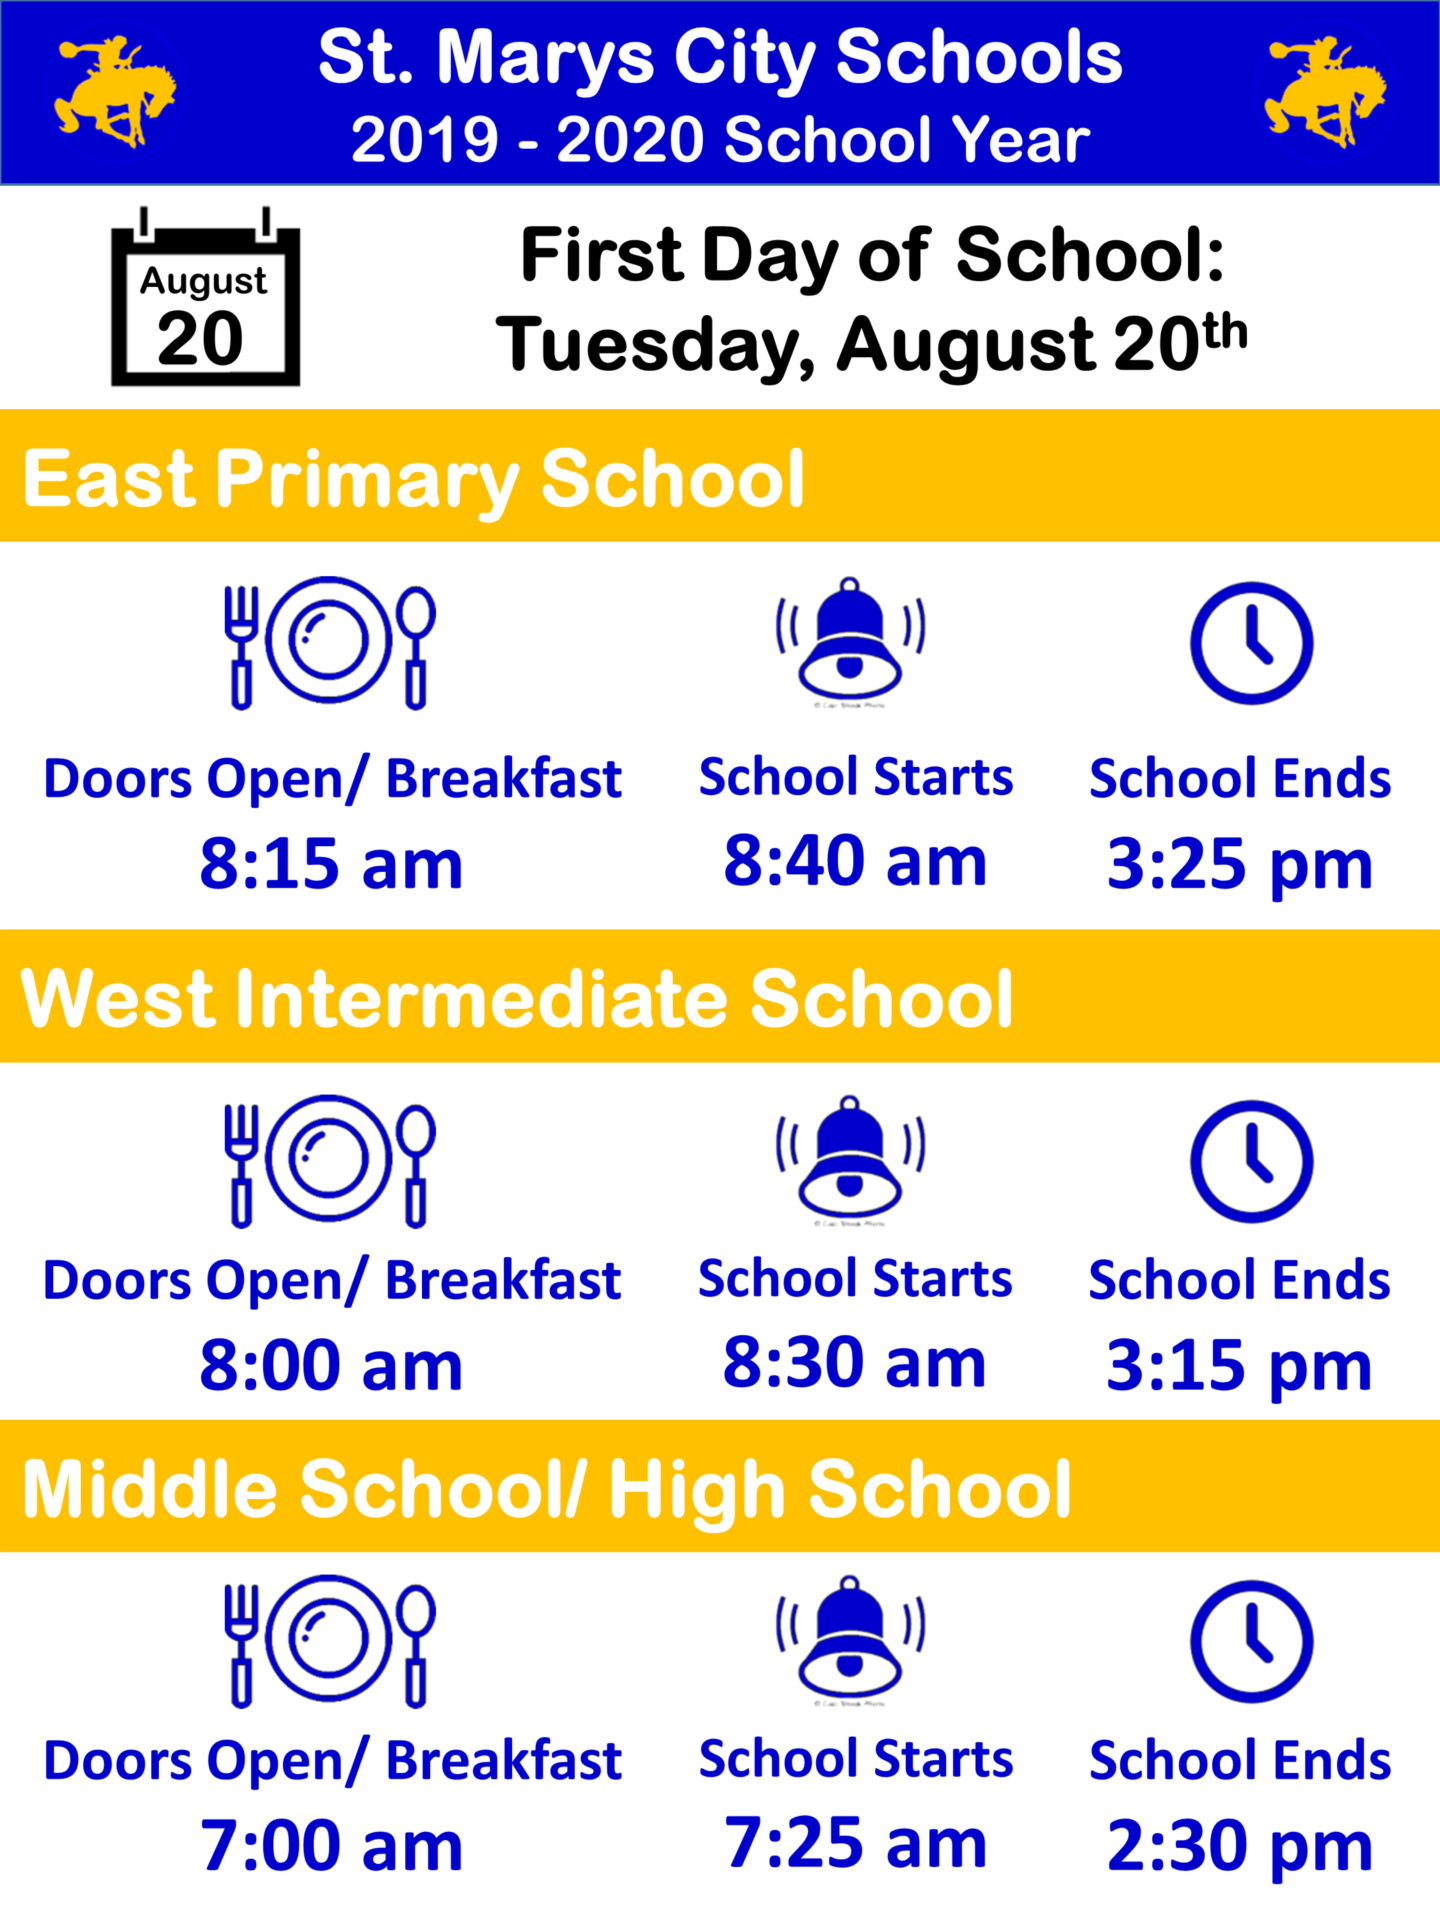 Picture lists the starting and ending Times for Each School are listed